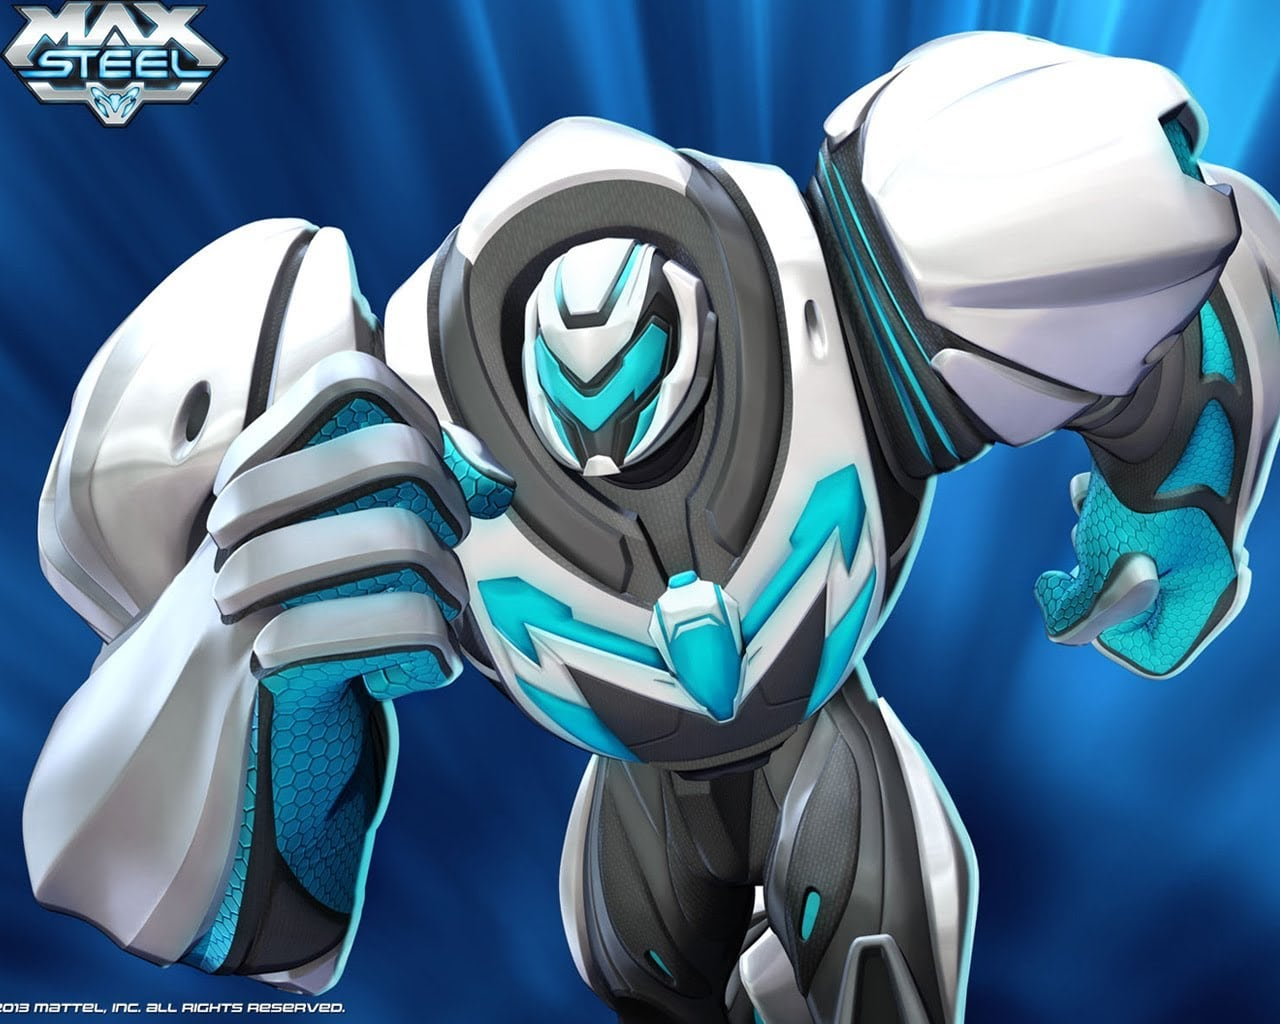 Max Steel Cartoon 2017 New